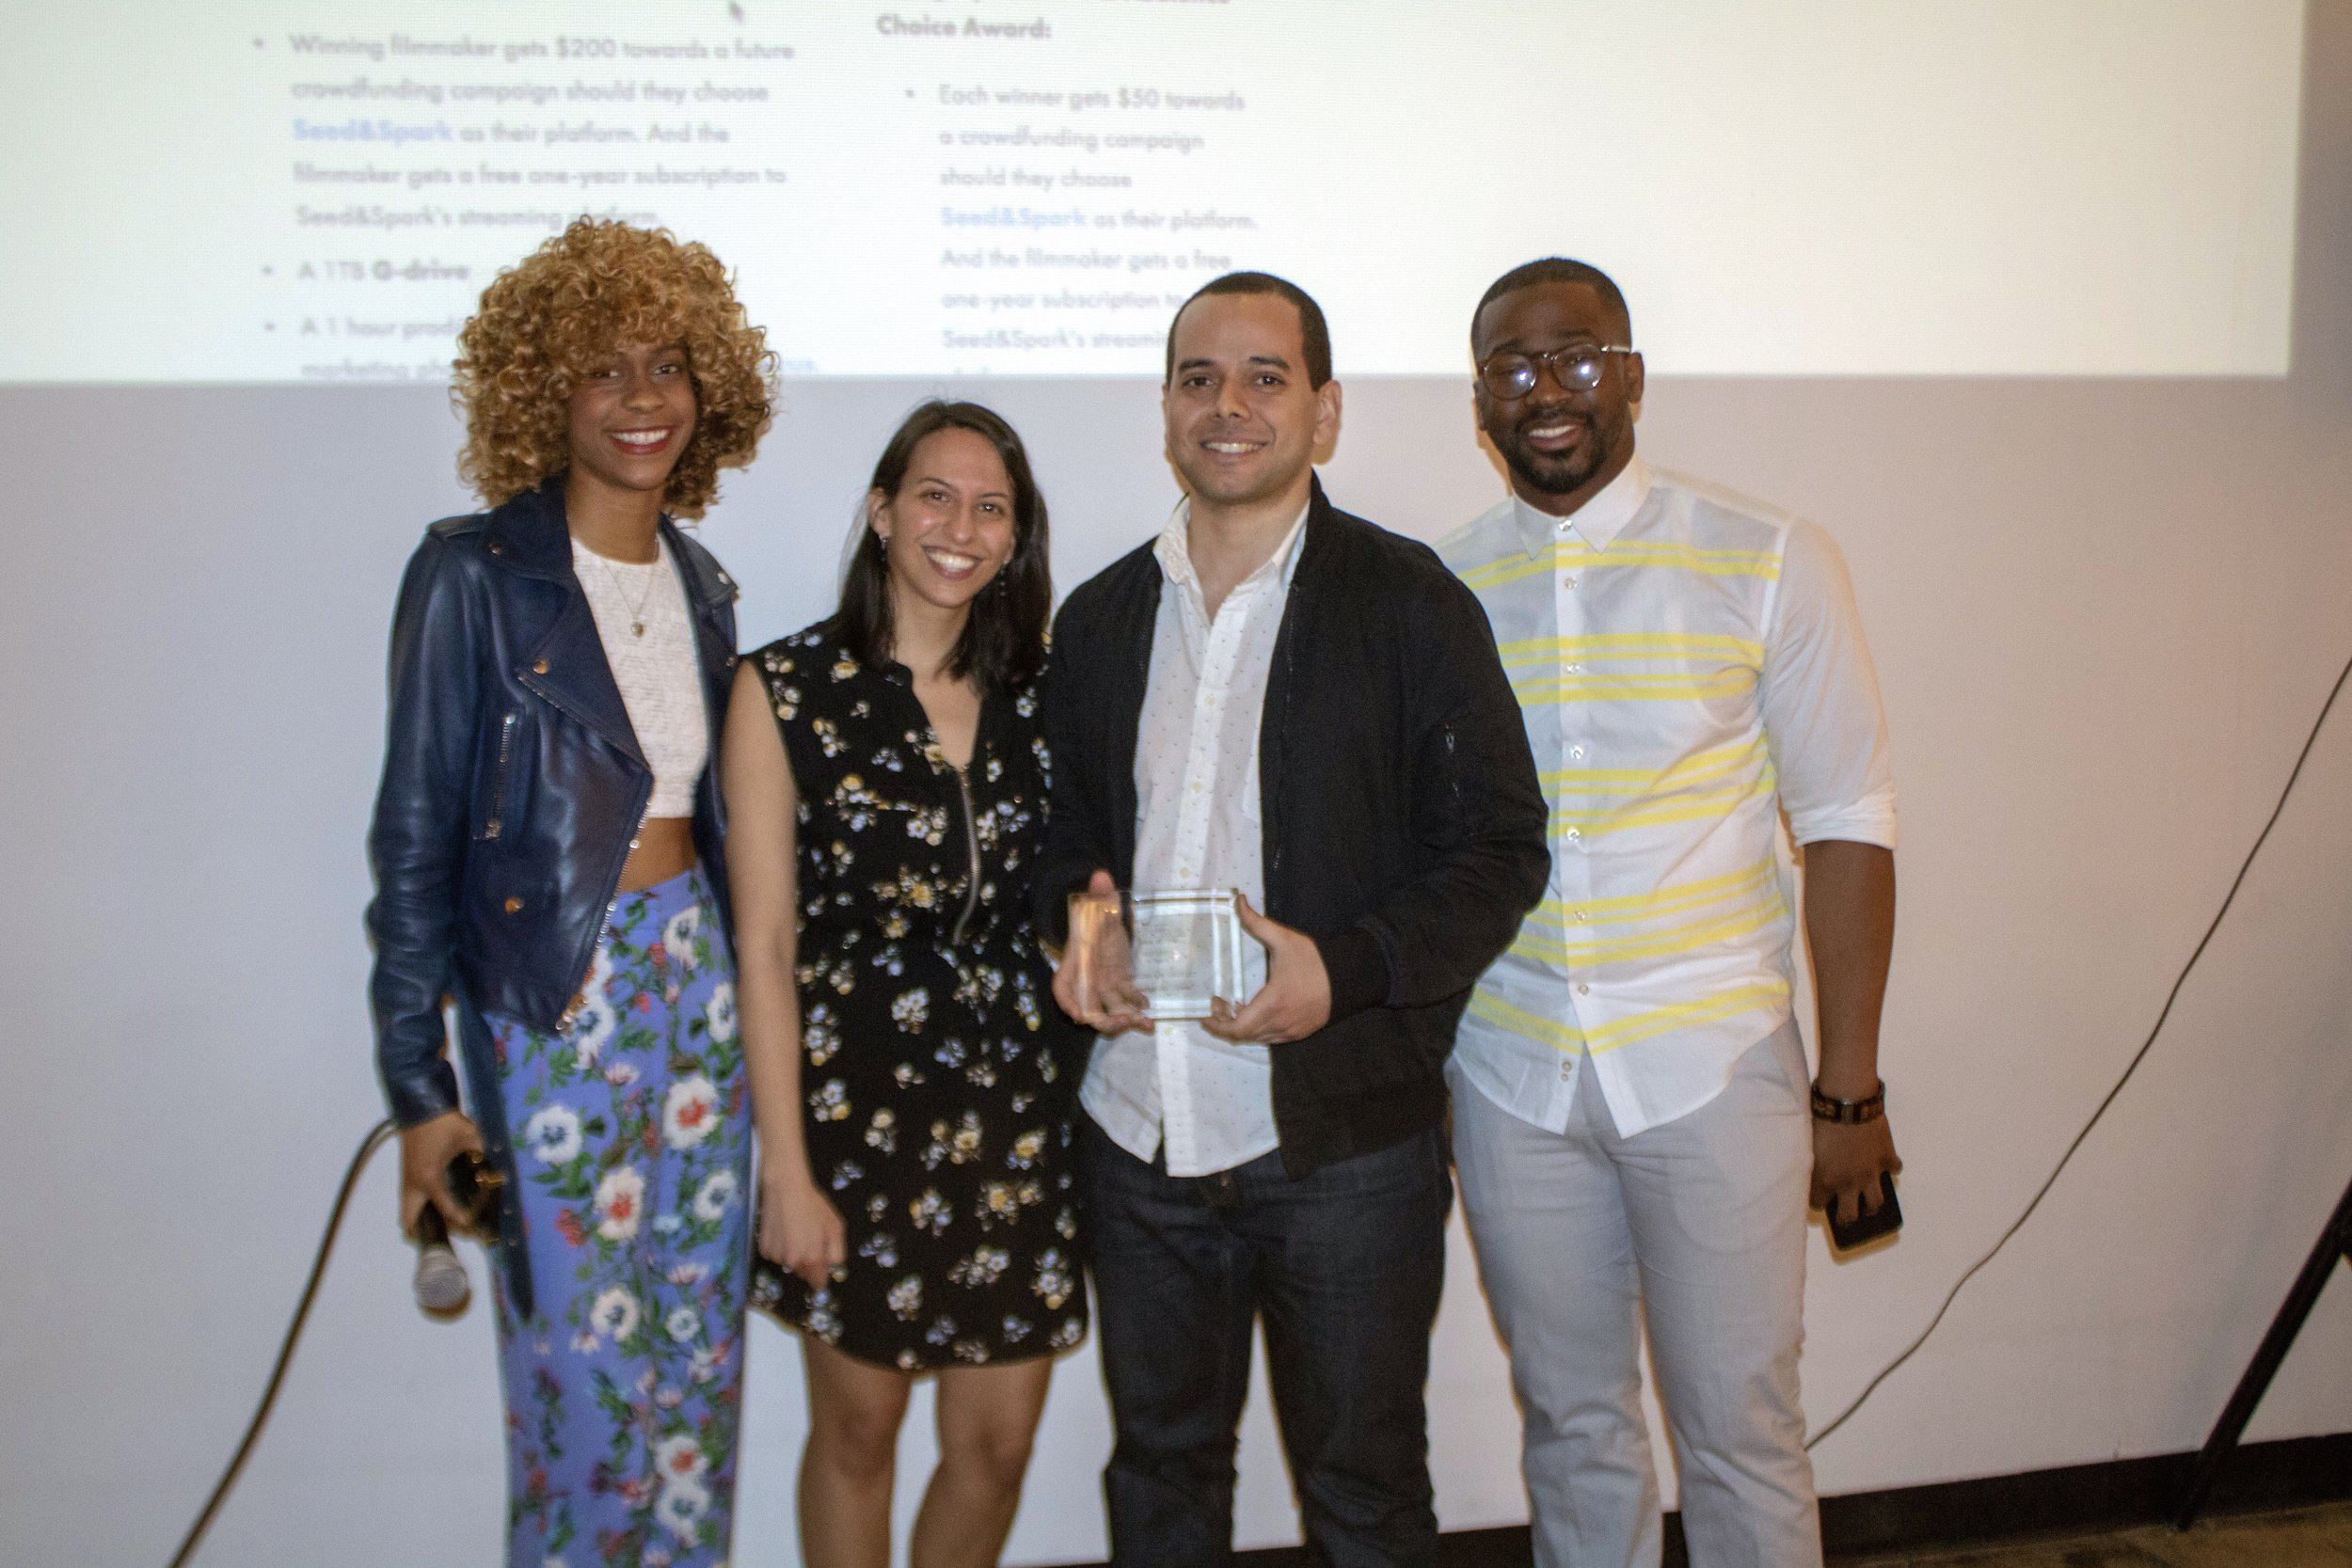 """BEST EDITING : """" Goodbye Old Friend""""  ( Rafael De Leon Jr ) - Wins $50 towards a  Seed&Spark  campaign, a free one-year subscription to Seed&Spark's streaming platform, and script coverage from the CongestedCat team of one future short screenplay."""